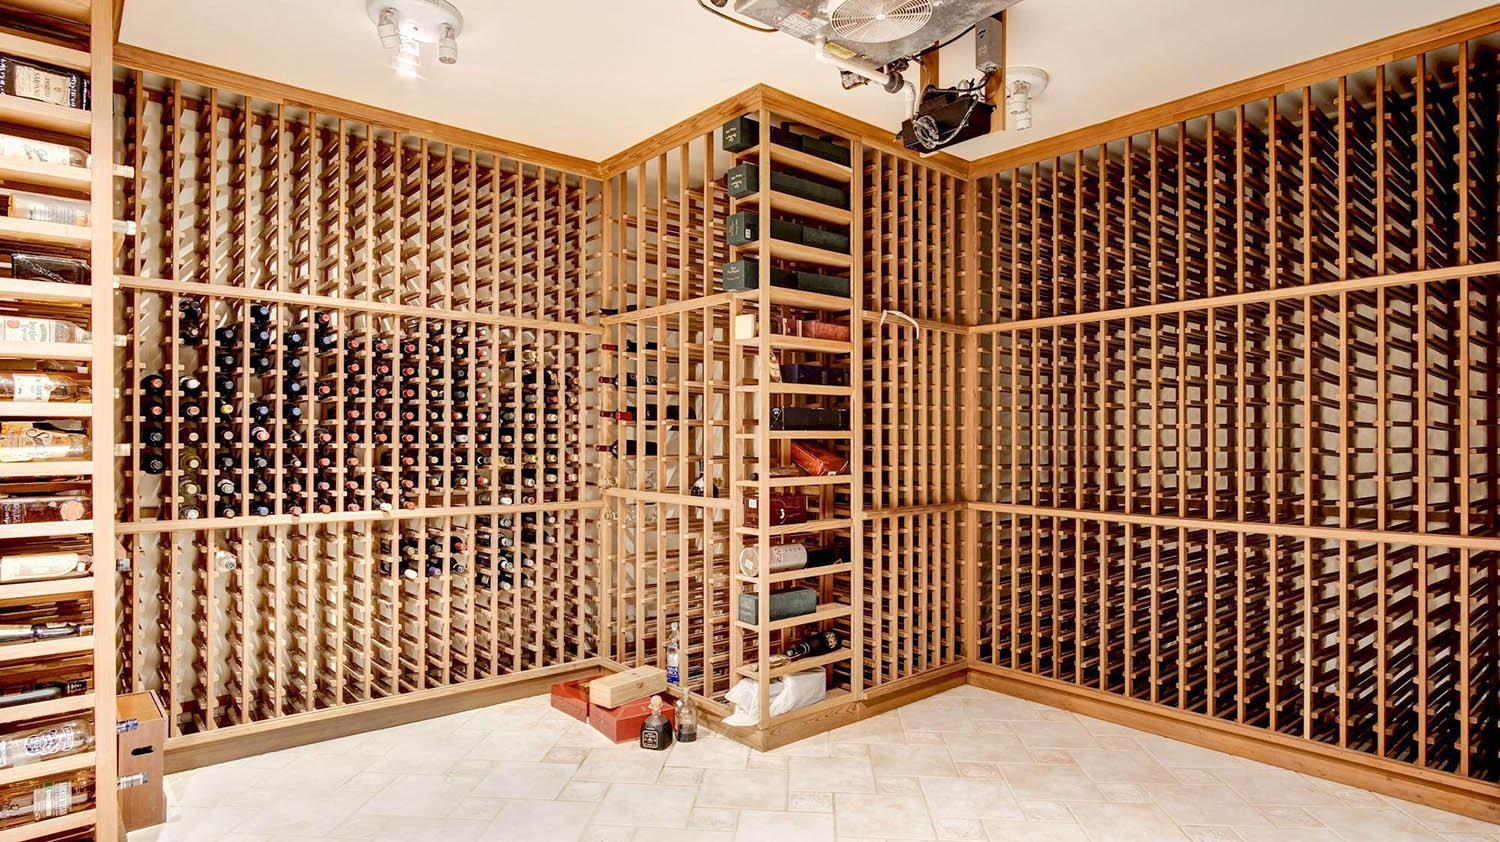 wine cellar design tons of single bottom wood racks with ceiling cooling unit